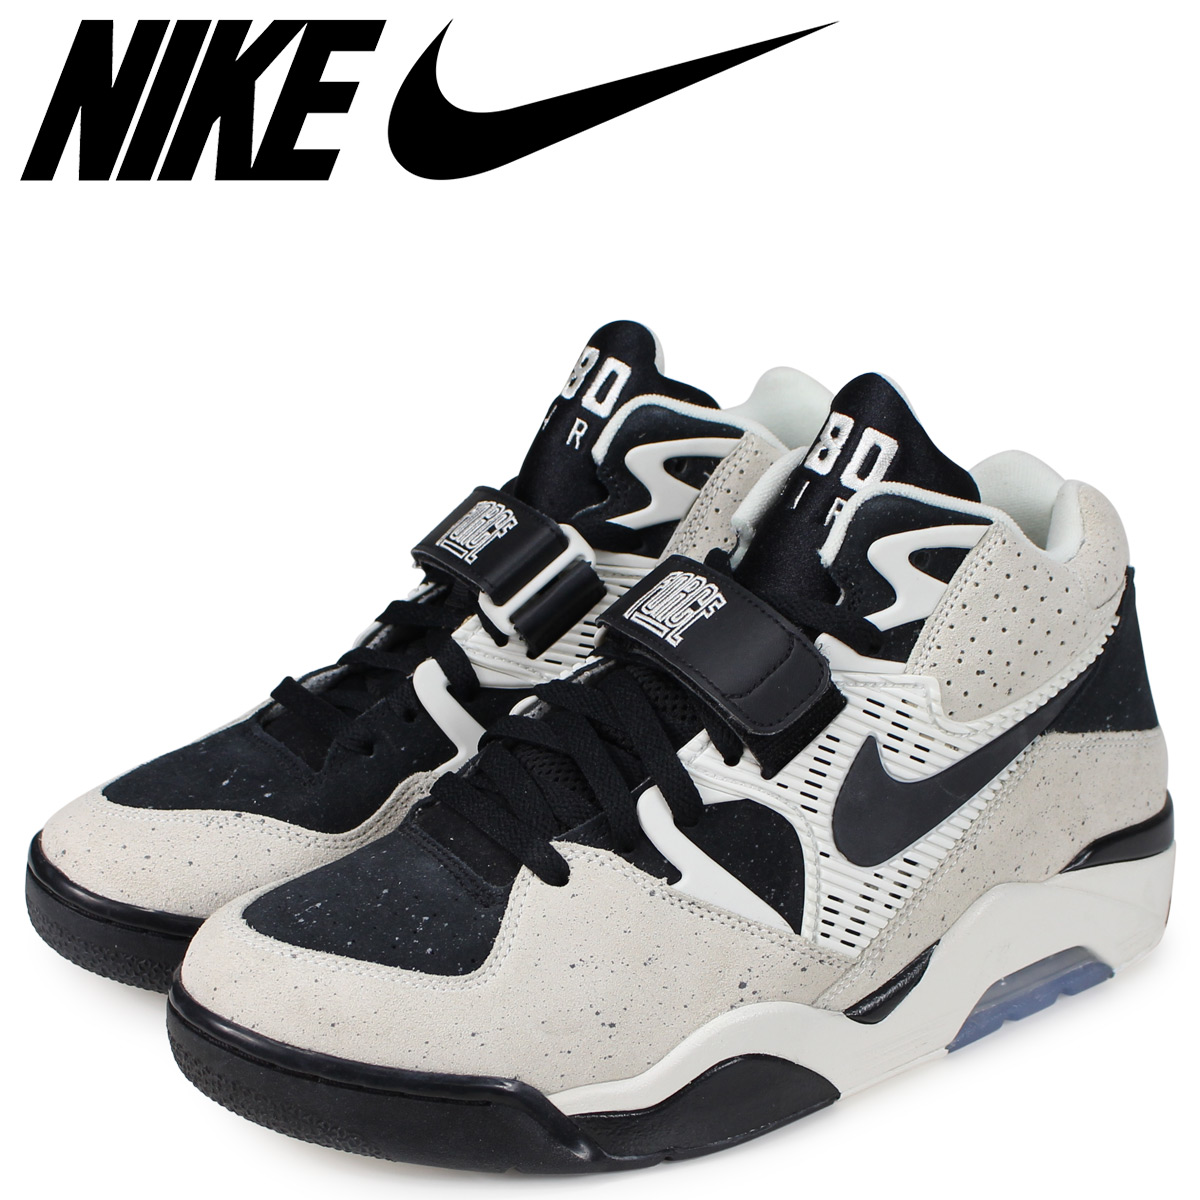 quality design 5565c ee2f9  brand NIKE getting high popularity from sneakers freak